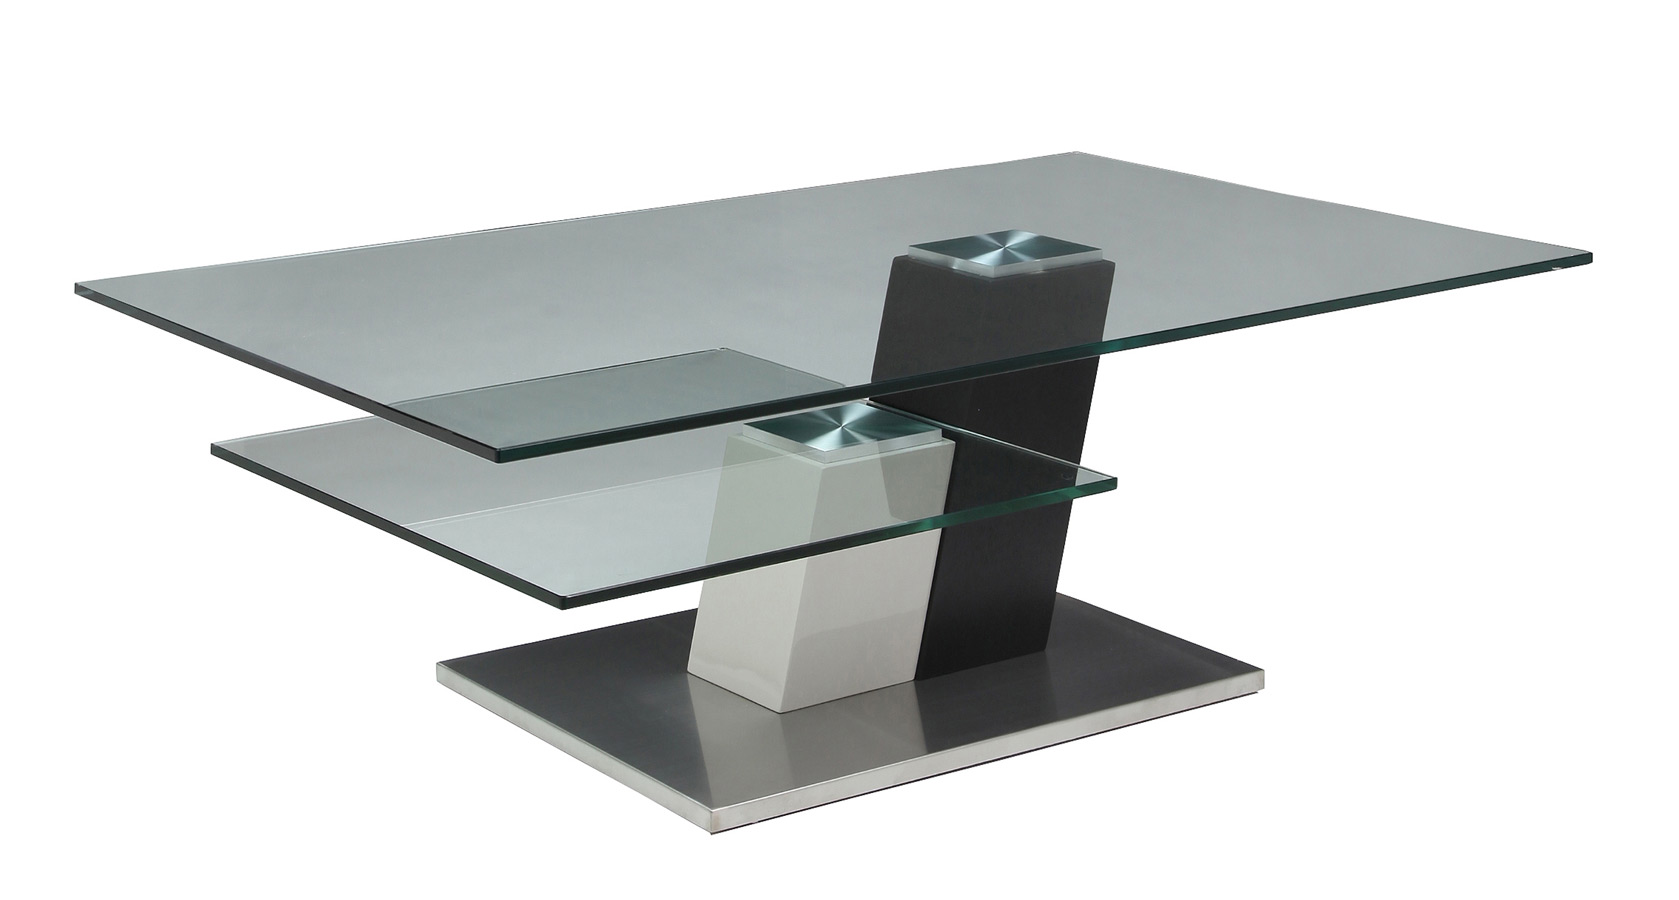 Stainless Steel Coffee Table Images 9k22 Tjihome